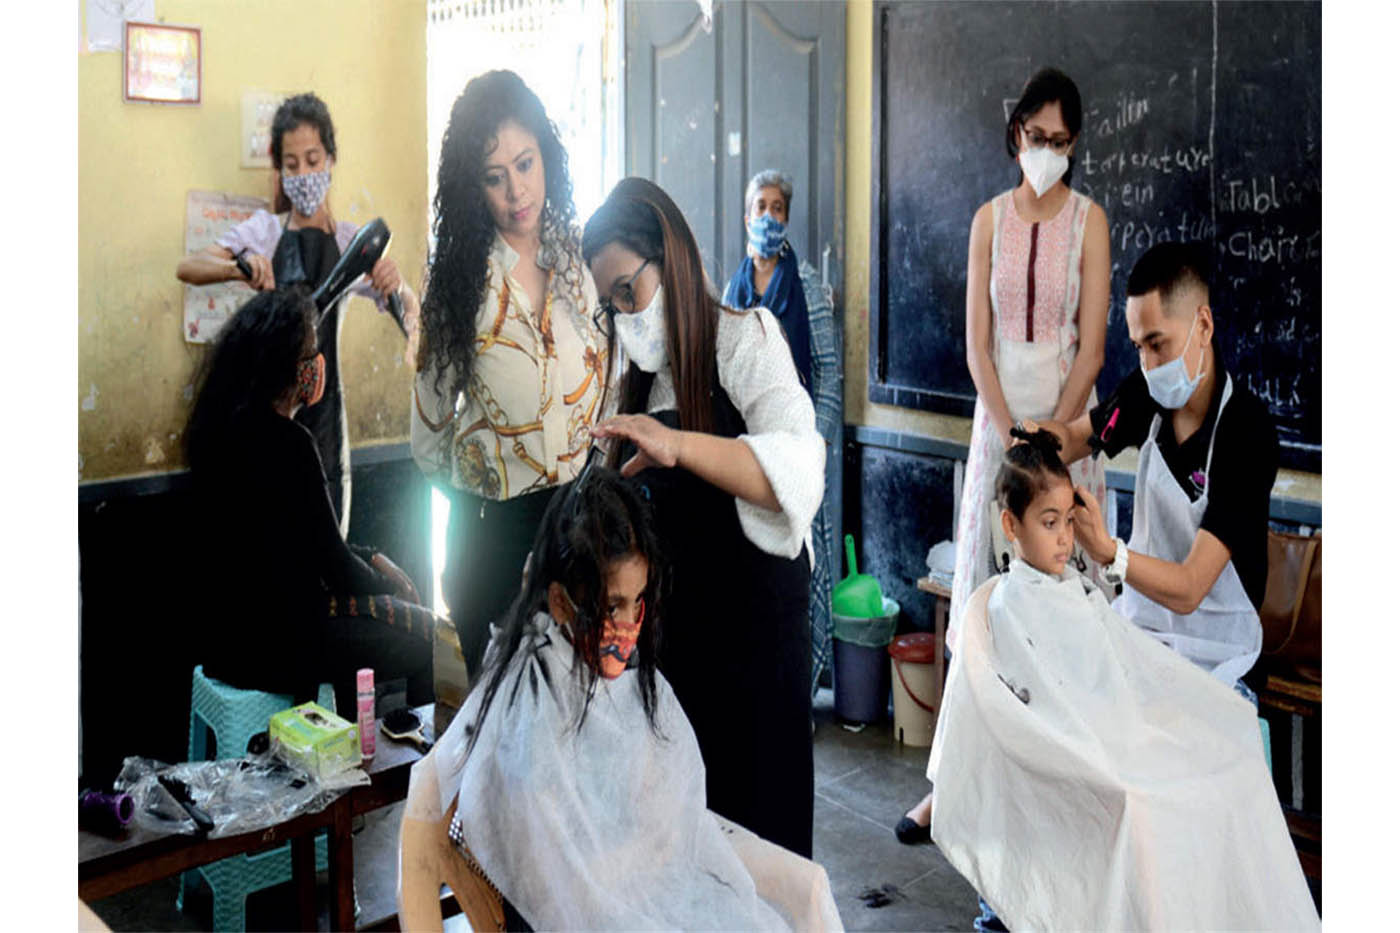 Bengaluru stylists give free haircuts to 30 girls